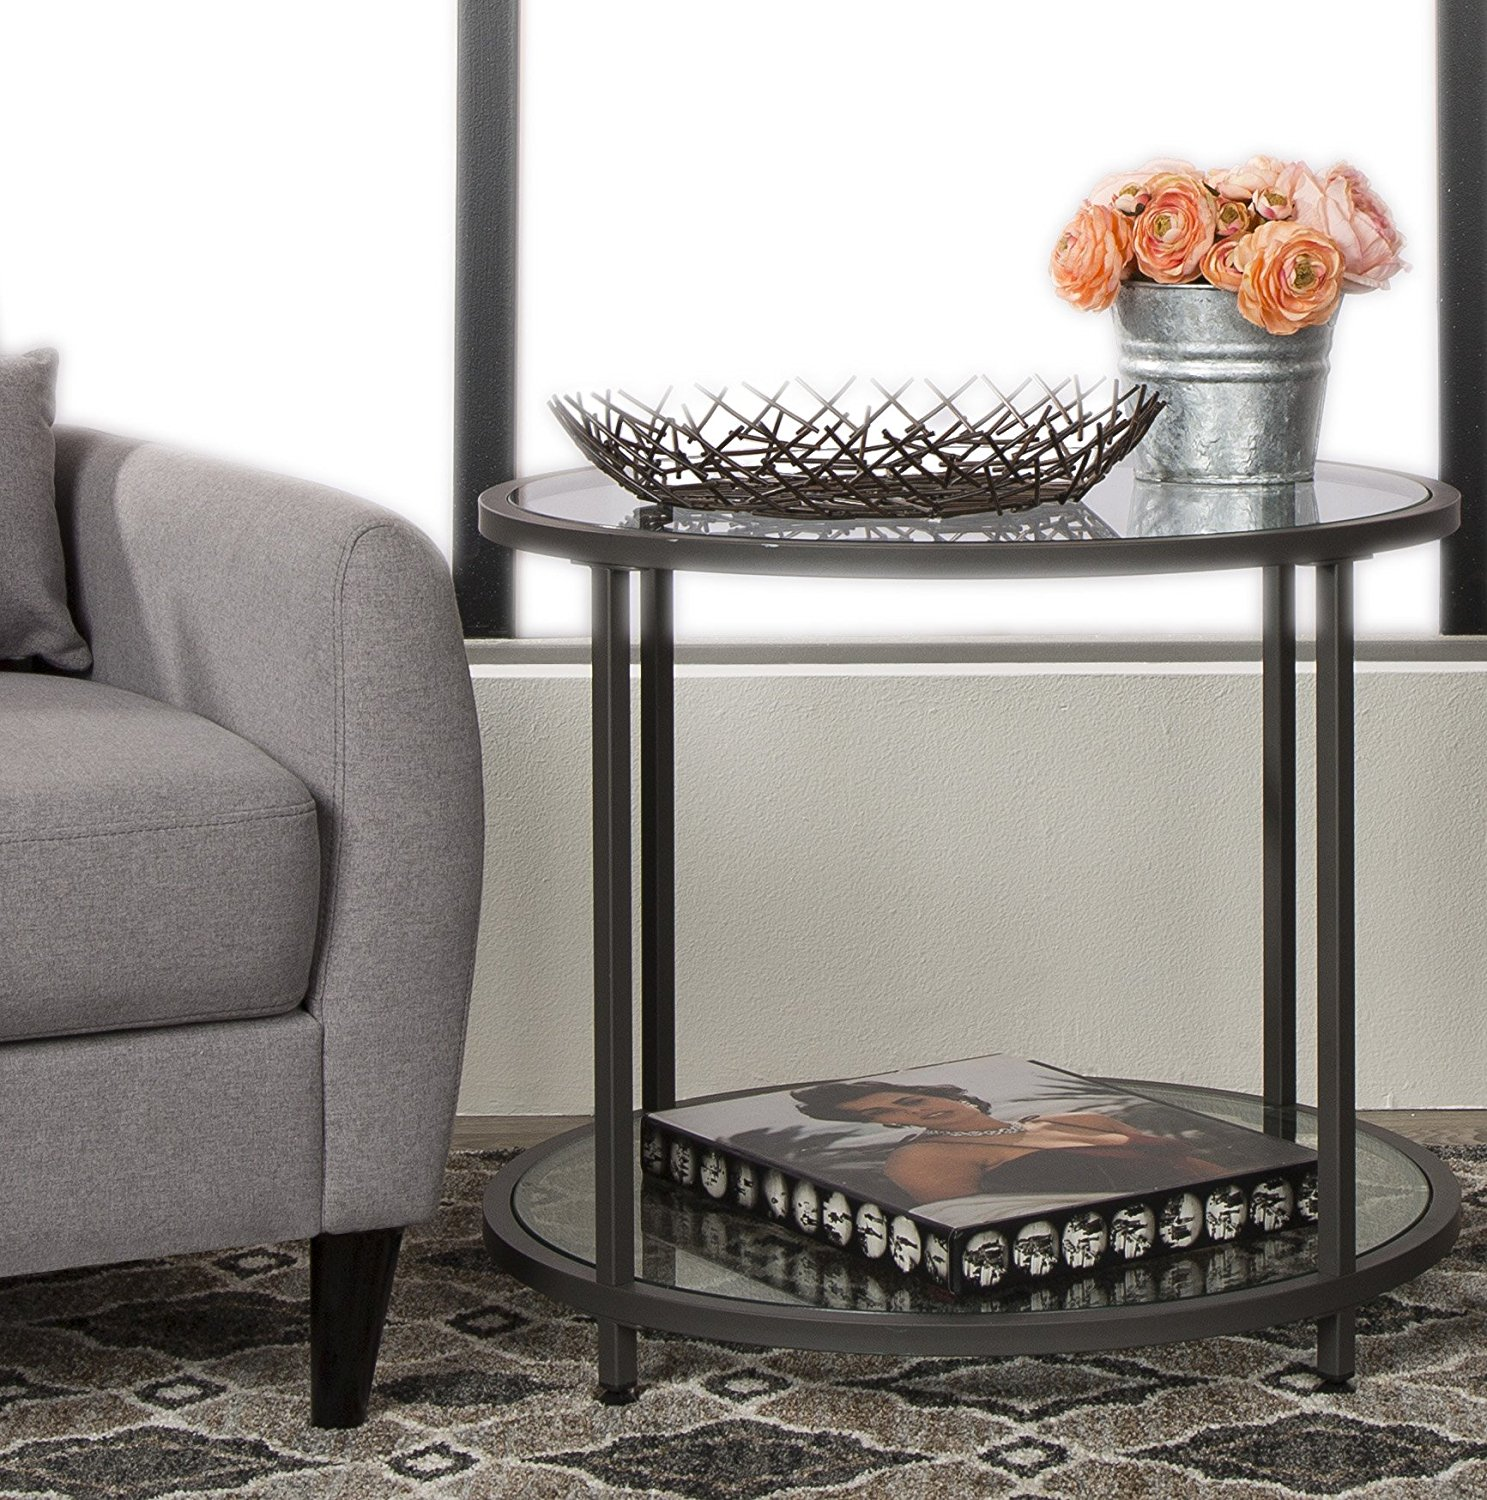 Studio Designs Camber Round Modern Living Room Accent Side Table - Pewter glass coffee table